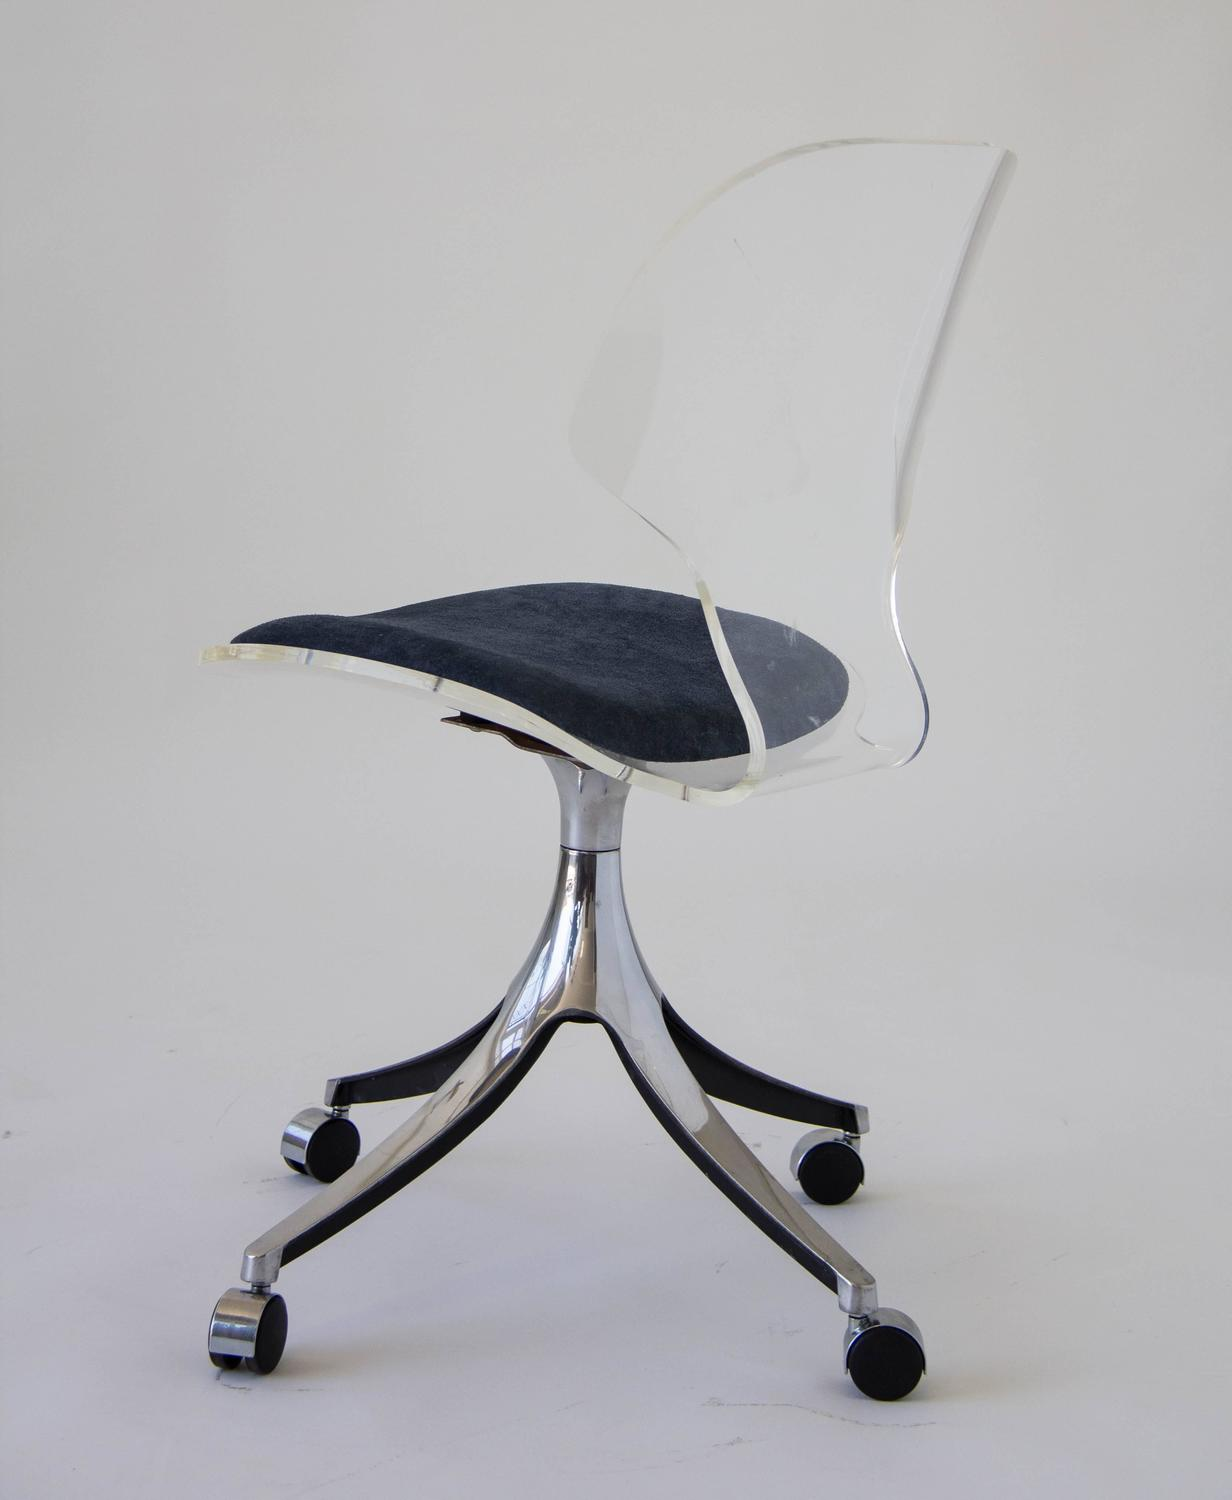 Acrylic Desk Chair Hill Manufacturing Co Lucite Rolling Desk Chair At 1stdibs